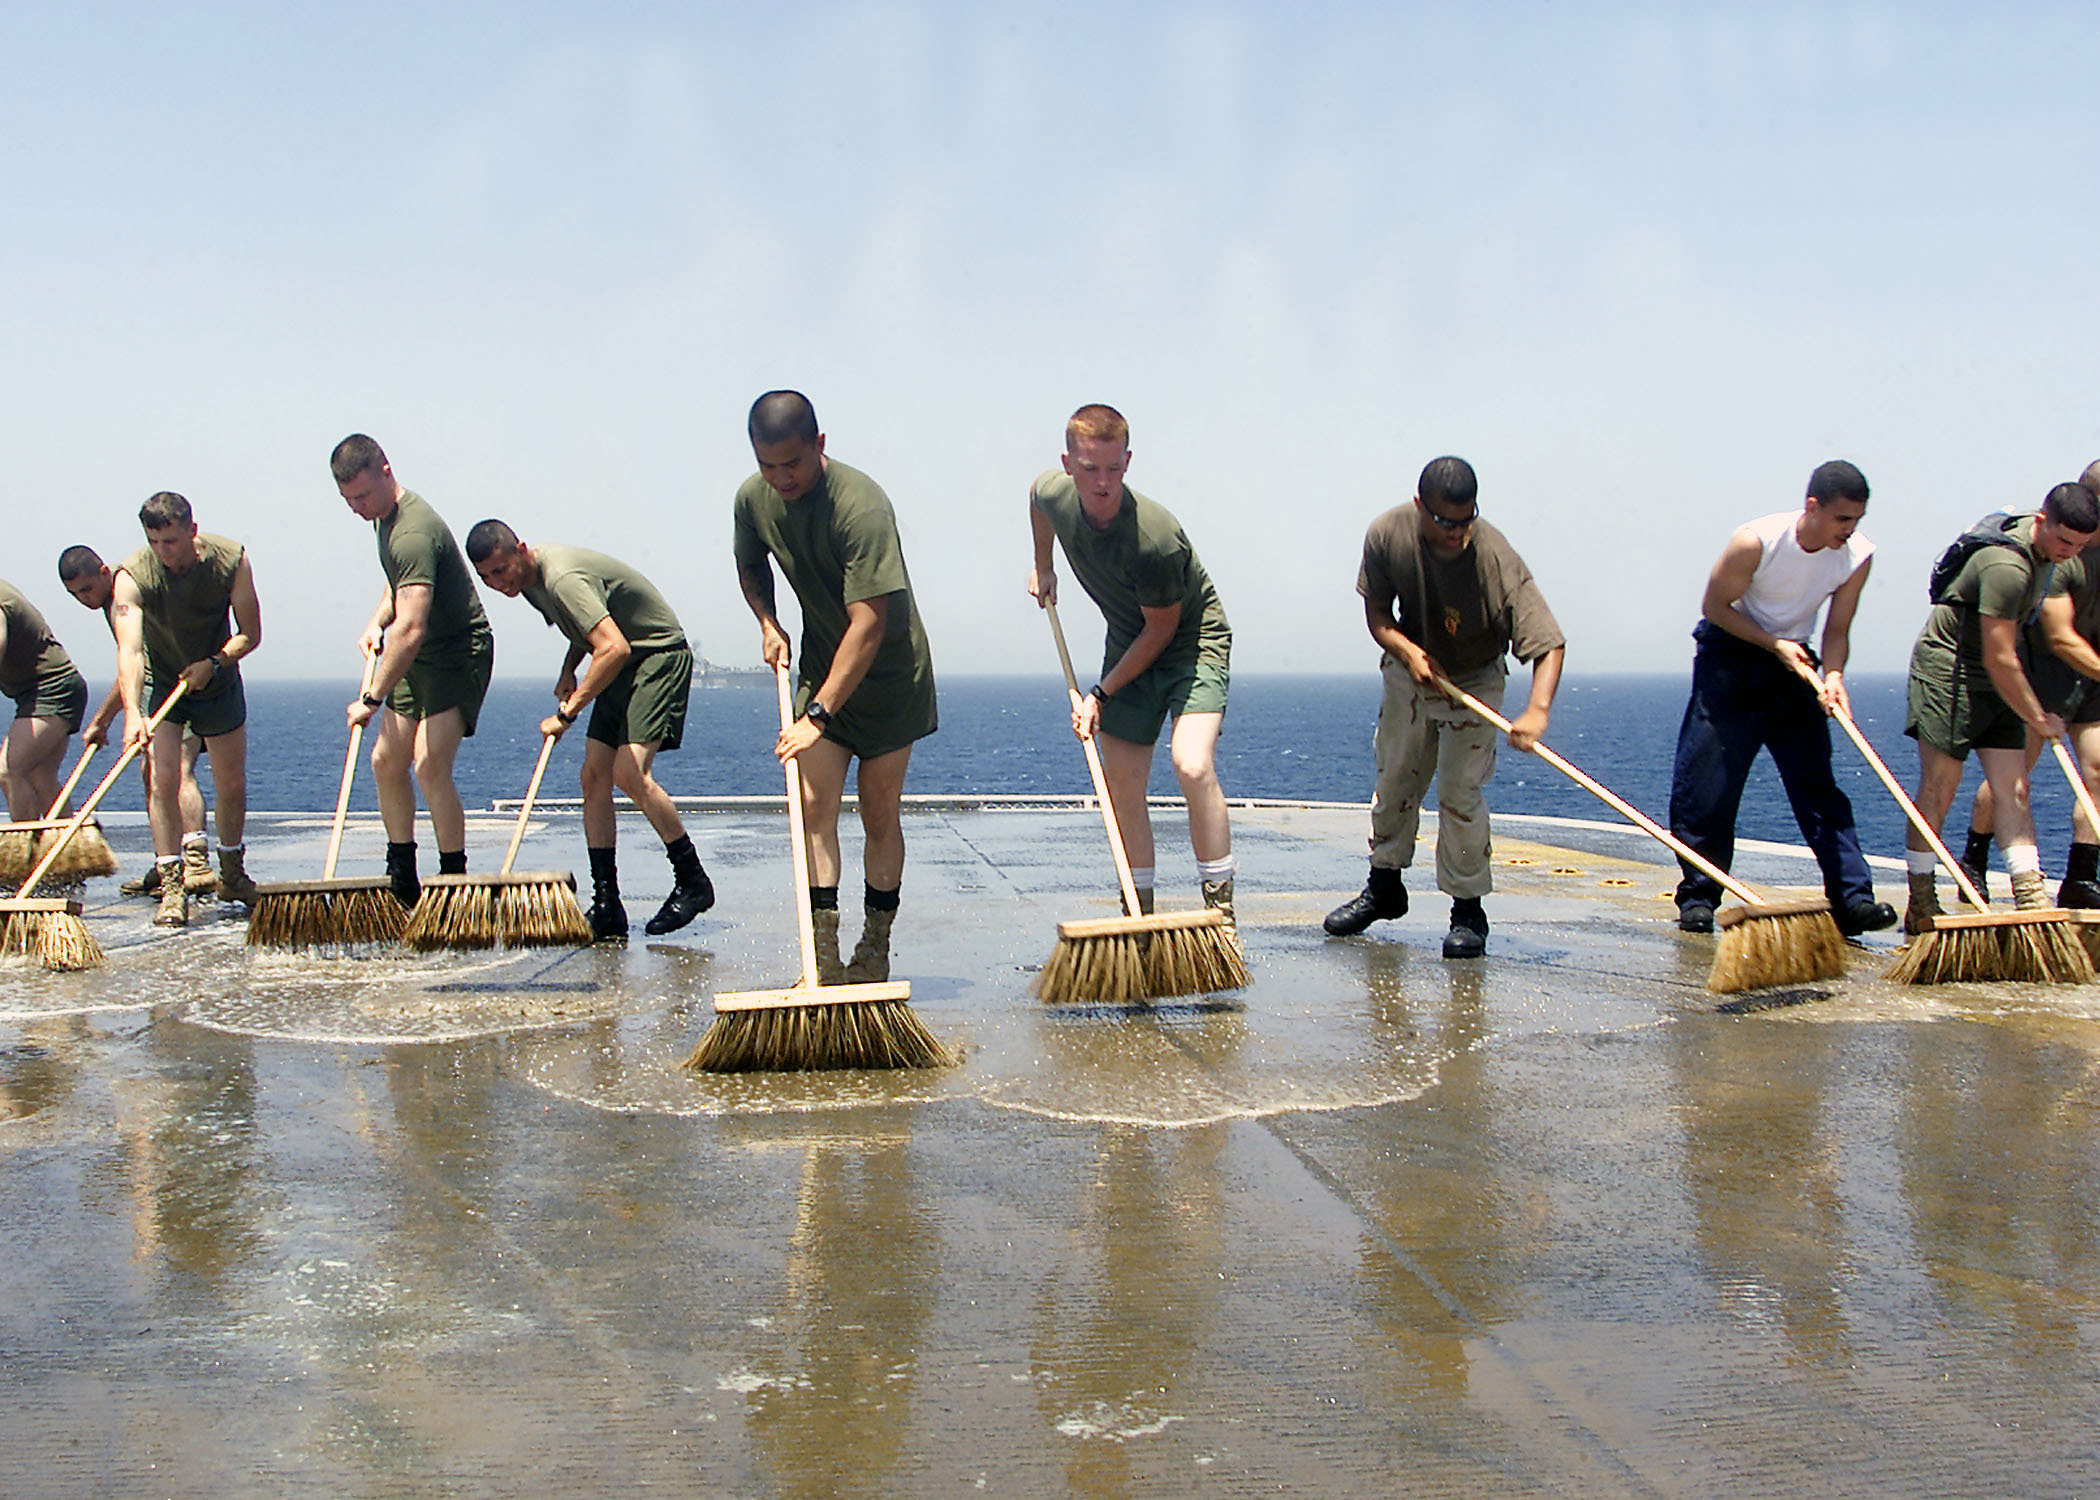 US_Navy_030521-N-9109V-003_Sailors_and_embarked_Marines_flood_the_flight_deck_with_salt-water_solution,_scrub_brooms,_and_plenty_of_elbow_grease_in_a_mandatory_wash_down.jpg